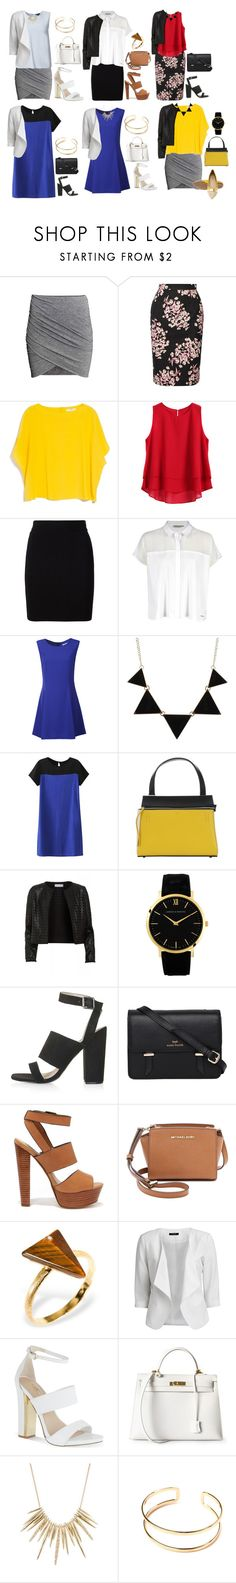 """Unbenannt #1852"" by strawberryfelton on Polyvore featuring Mode, Jonathan Saunders, MANGO, T By Alexander Wang, Calvin Klein, Alice & You, CO, CÉLINE, Maglie I Blues und Larsson & Jennings"